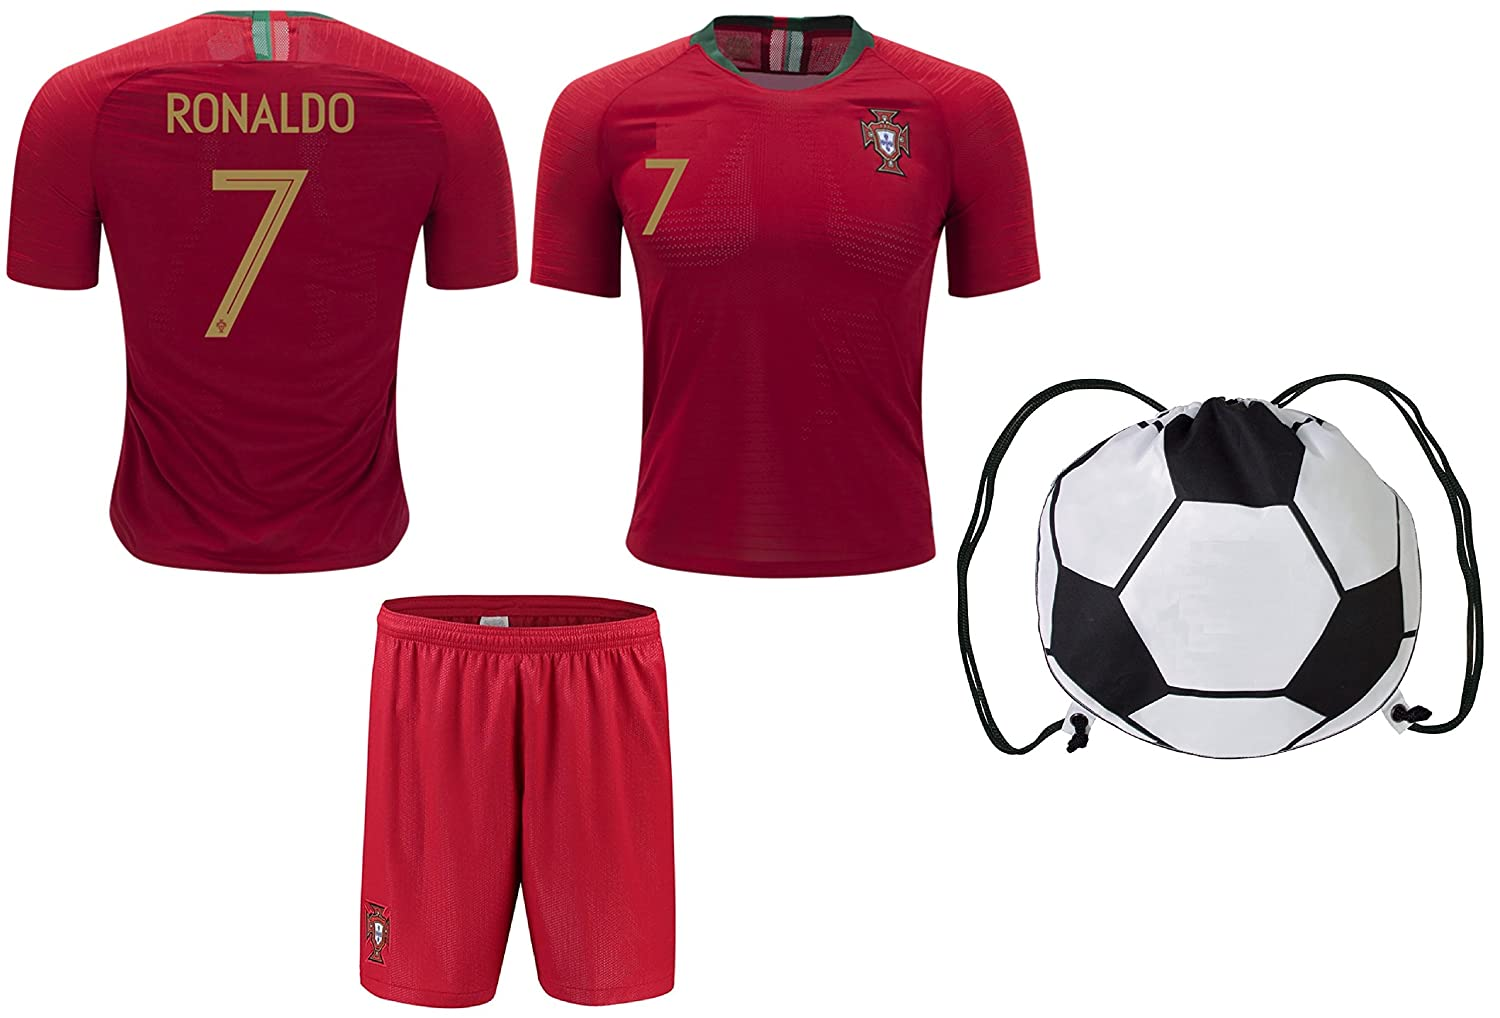 sneakers for cheap 7ff4d ad58b Fan Kitbag Cristiano Ronaldo Soccer Jersey 2018 World Cup #7 Portugal Home  Youth Ronaldo Soccer Jersey & Shorts Kids Premium Gift Kit ✮ BONUS Ronaldo  ...